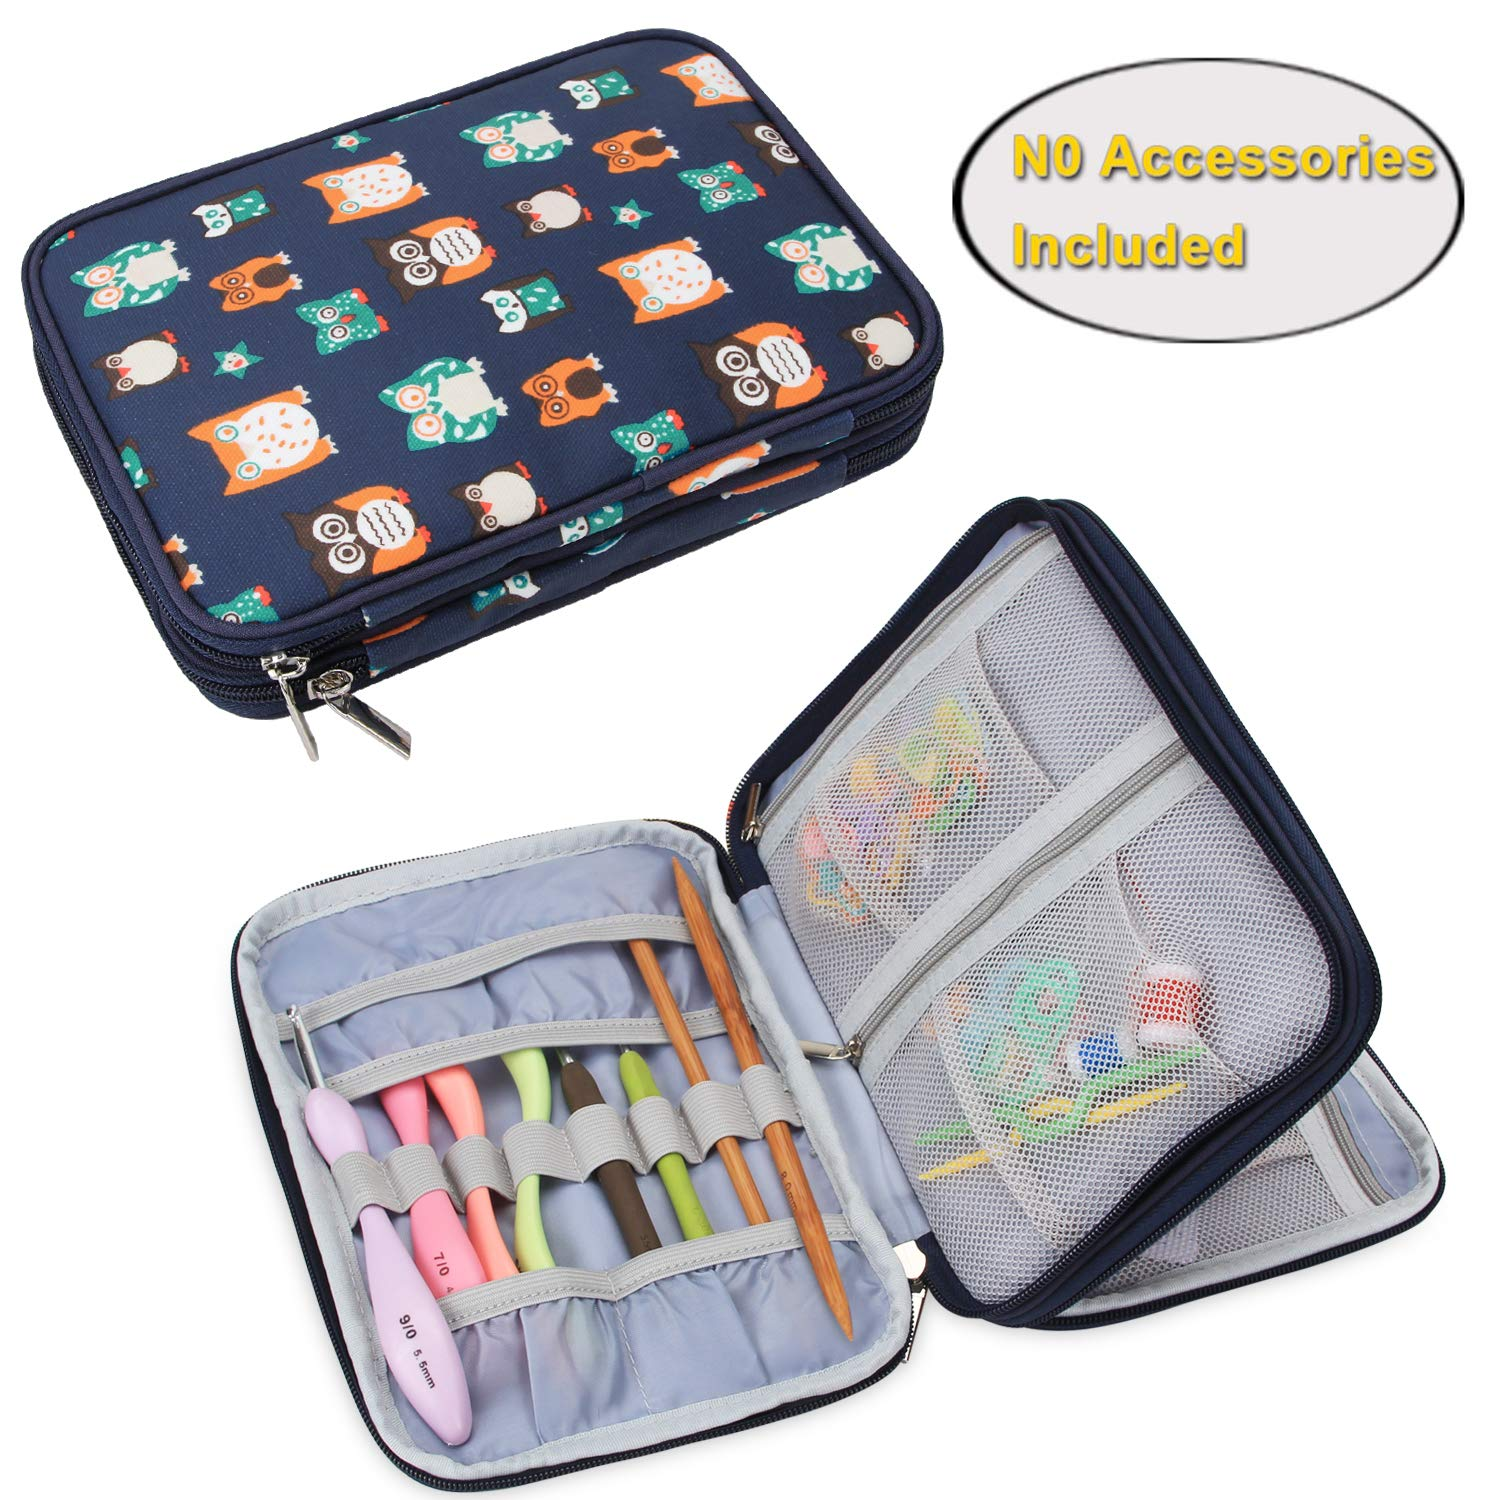 Teamoy Crochet Hook Case, Travel Storage Bag for Swing Crochet Hooks, Lighted Hooks, Needles(Up to 8'') and Accessories, Owls(No Accessories Included)